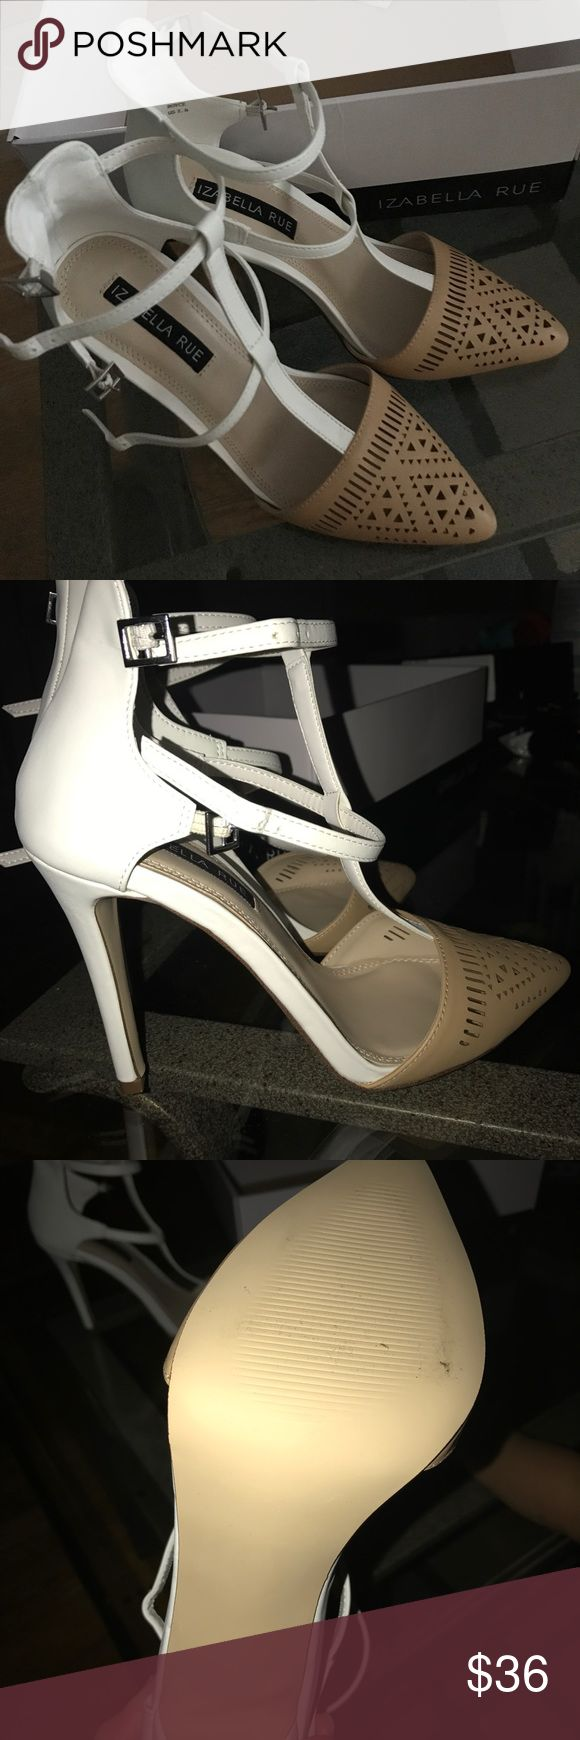 Two tone pumps heels Two tone heels. Cute cut out on the top part of shoes. Very cute but too high for me. Izabella Rue Shoes Heels